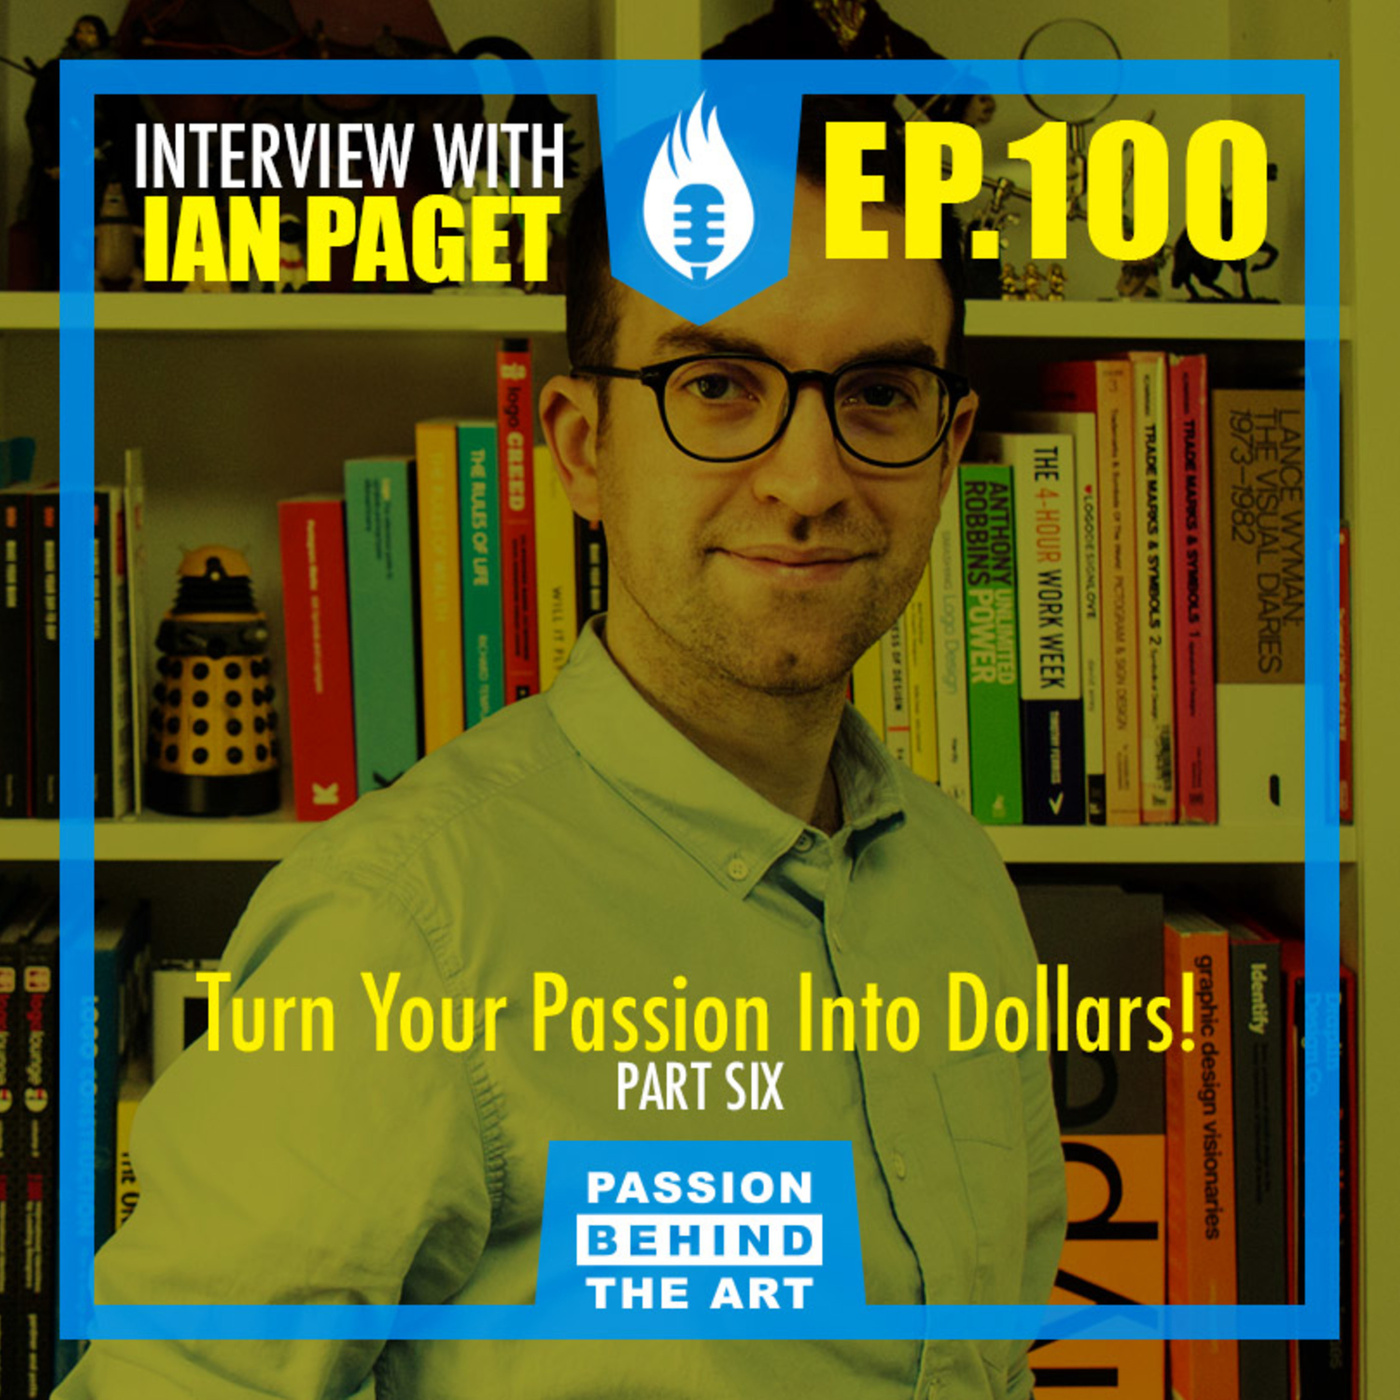 Turning Your Passion Into Dollars with Ian Paget | Passion Behind the Art EP. 100 LIVE EVENT: PT. 6